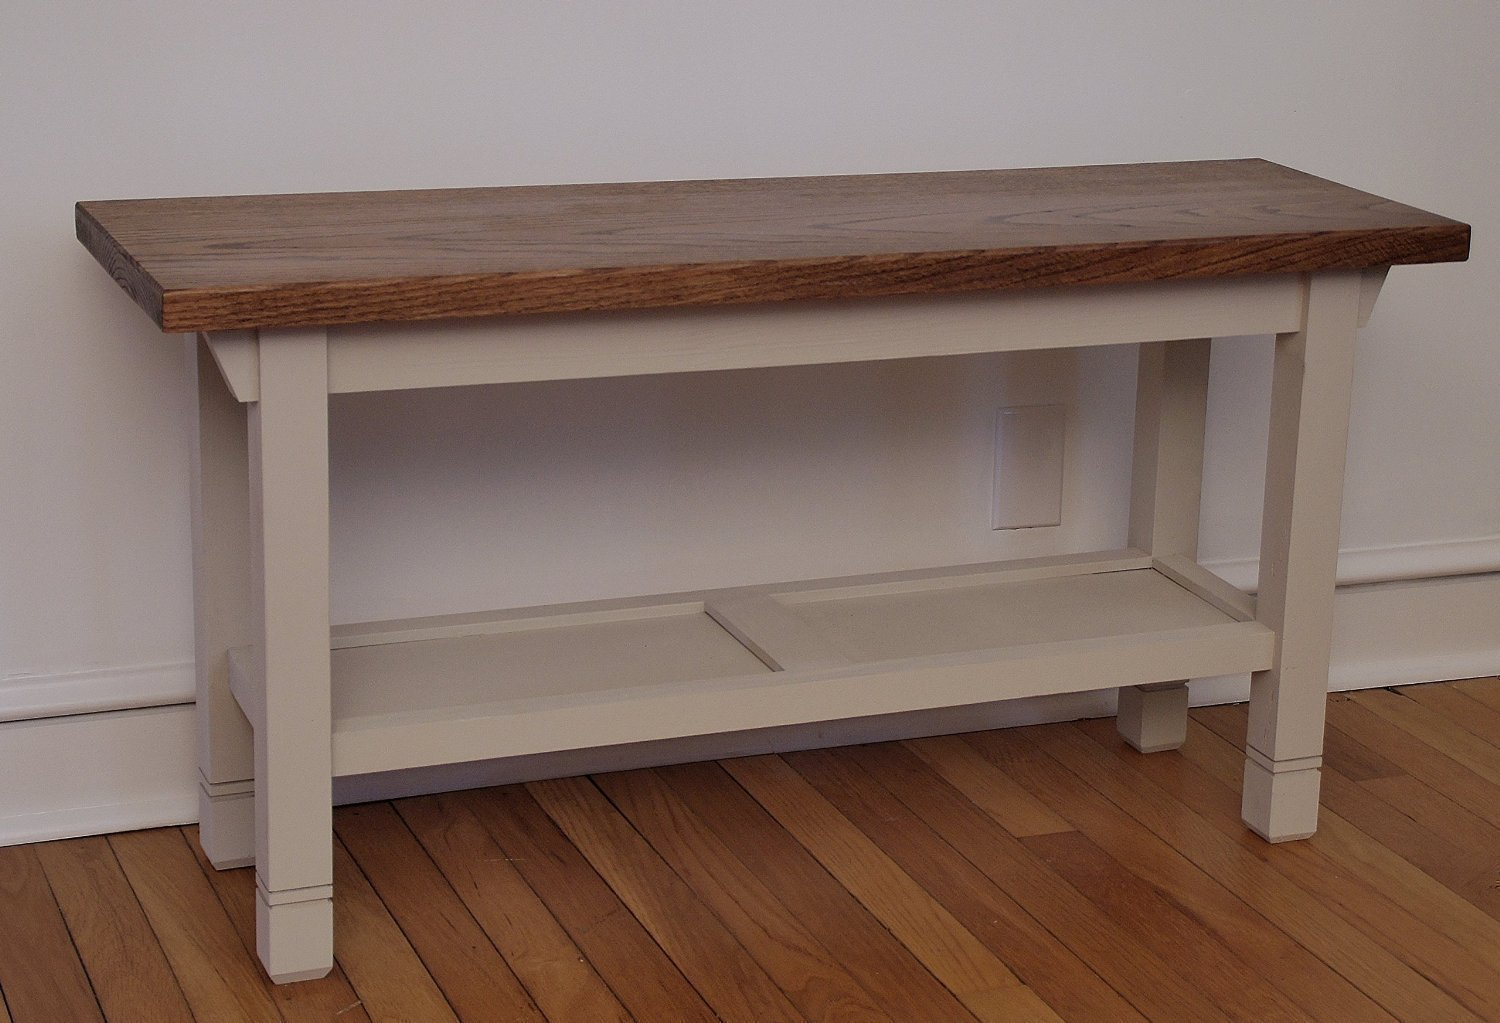 Hallway / Mud Room / Foyer Bench In Your Choice Of Color And Size 30'' - 46''